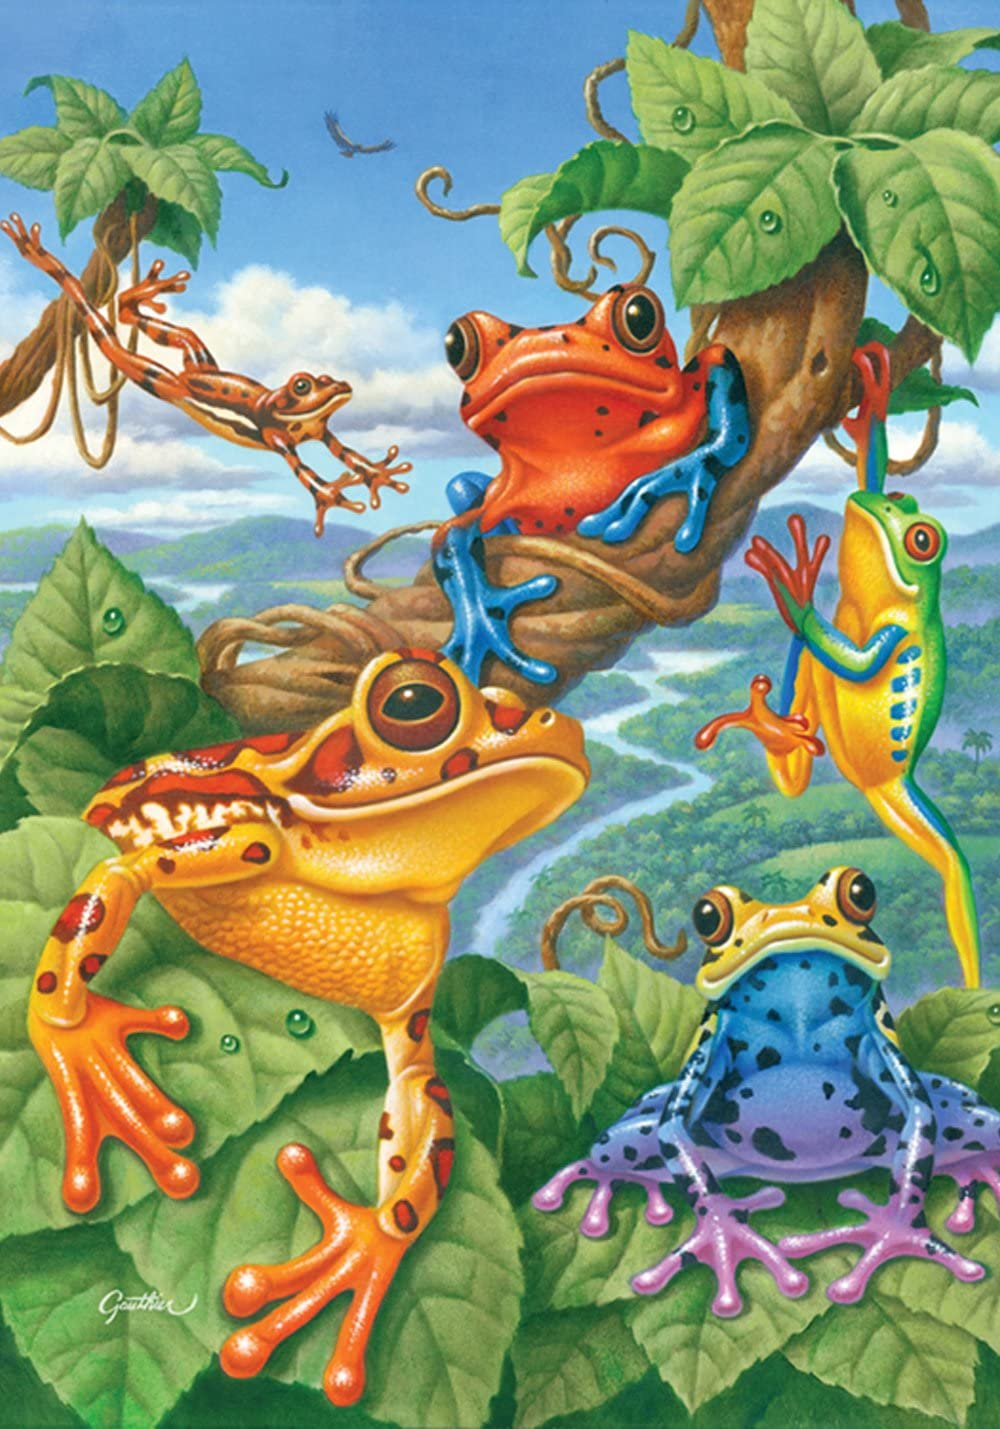 Toland Home Garden Tree Frog 28 x 40 Inch Decorative Colorful Exotic Jungle Frogs House Flag